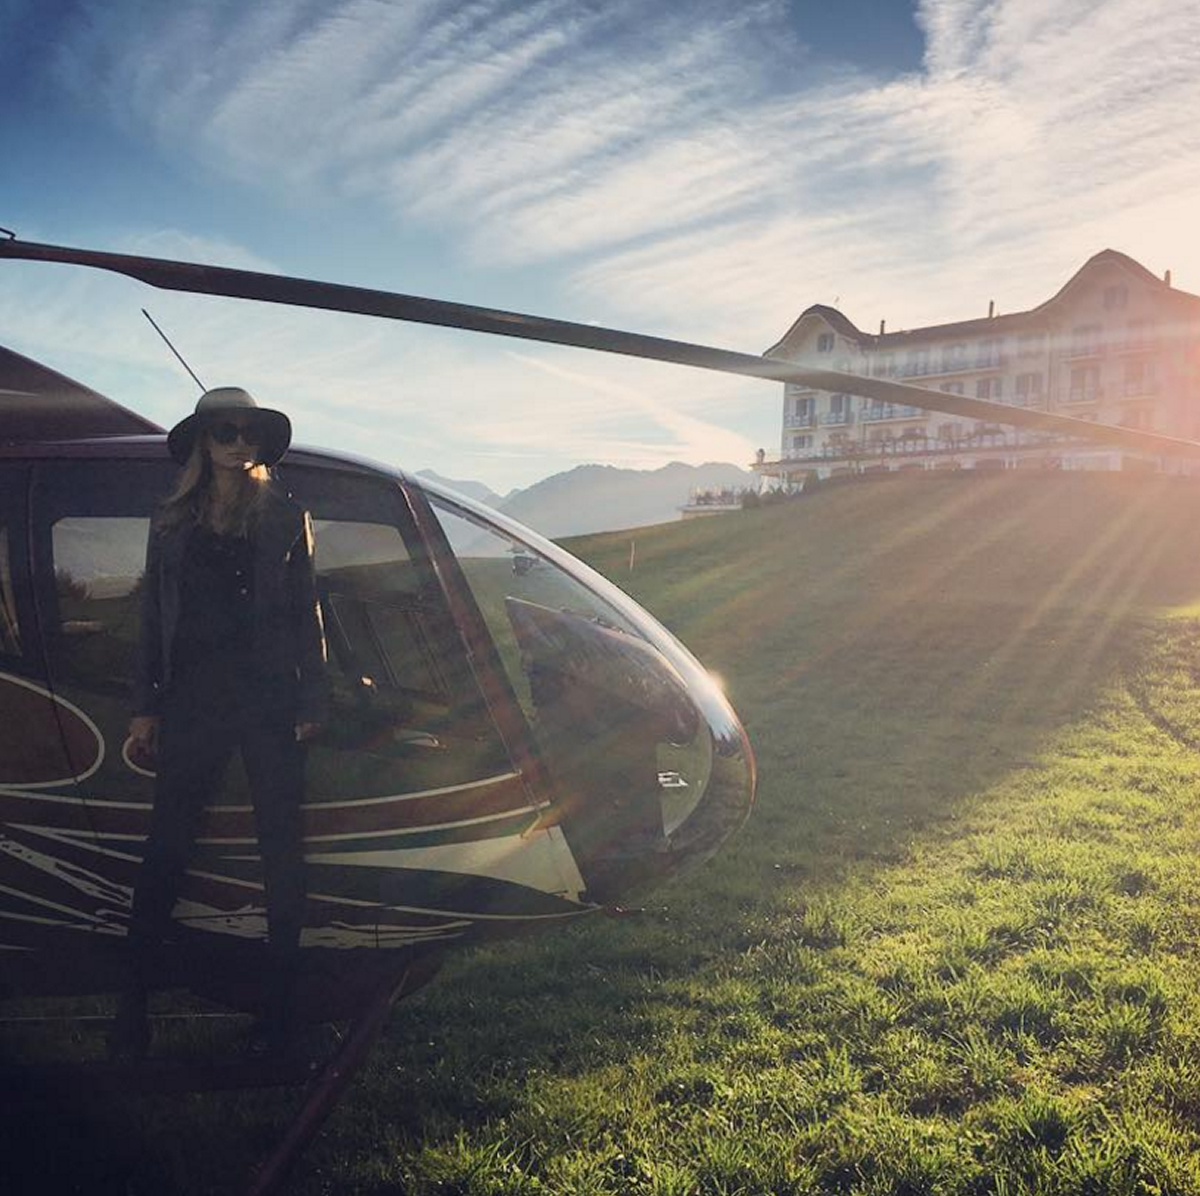 eat a helicopter with Hotel Villa Honegg on Hotel Villa Honegg as well The Best Original Syfy Movies moreover Ultimate Hawaii Travel Guide also School Field Closes Makeover in addition P.